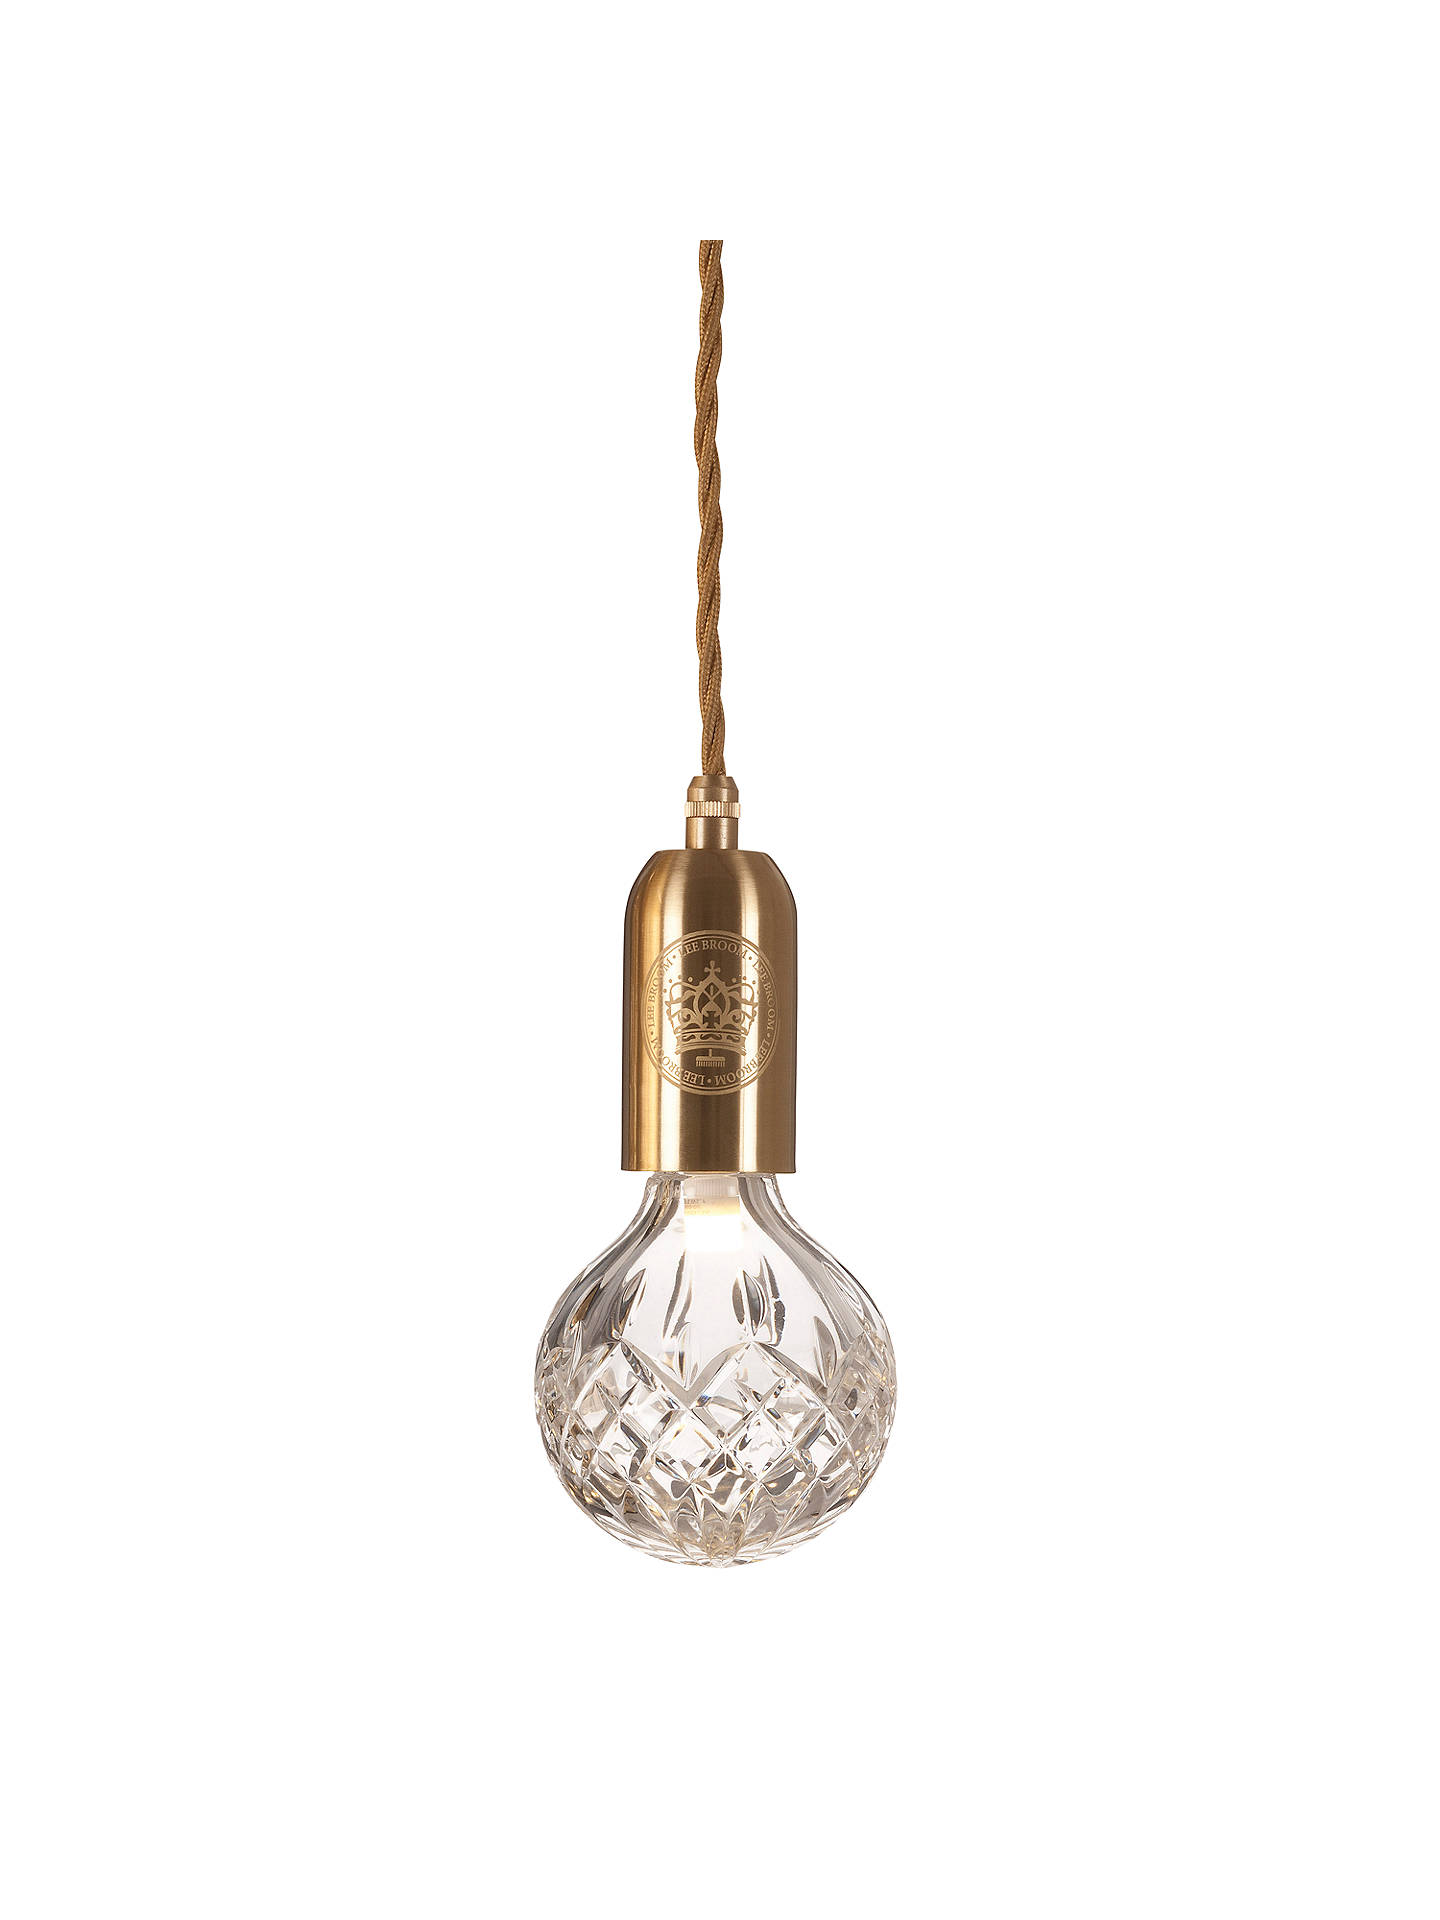 BuyLee Broom Clear Crystal Bulb and Pendant Online at johnlewis.com